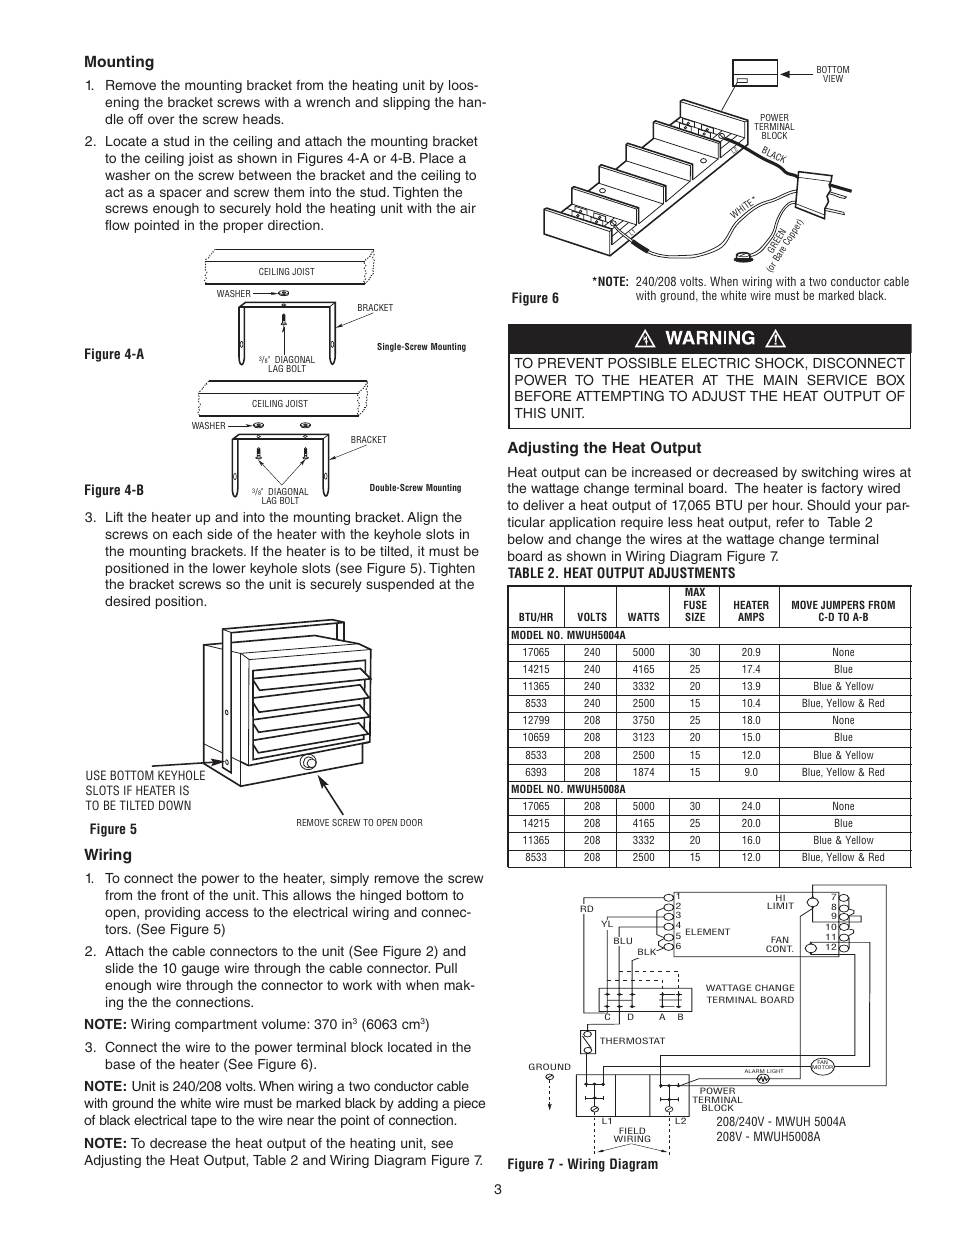 modine unit heater wiring diagram Modine Heater Parts